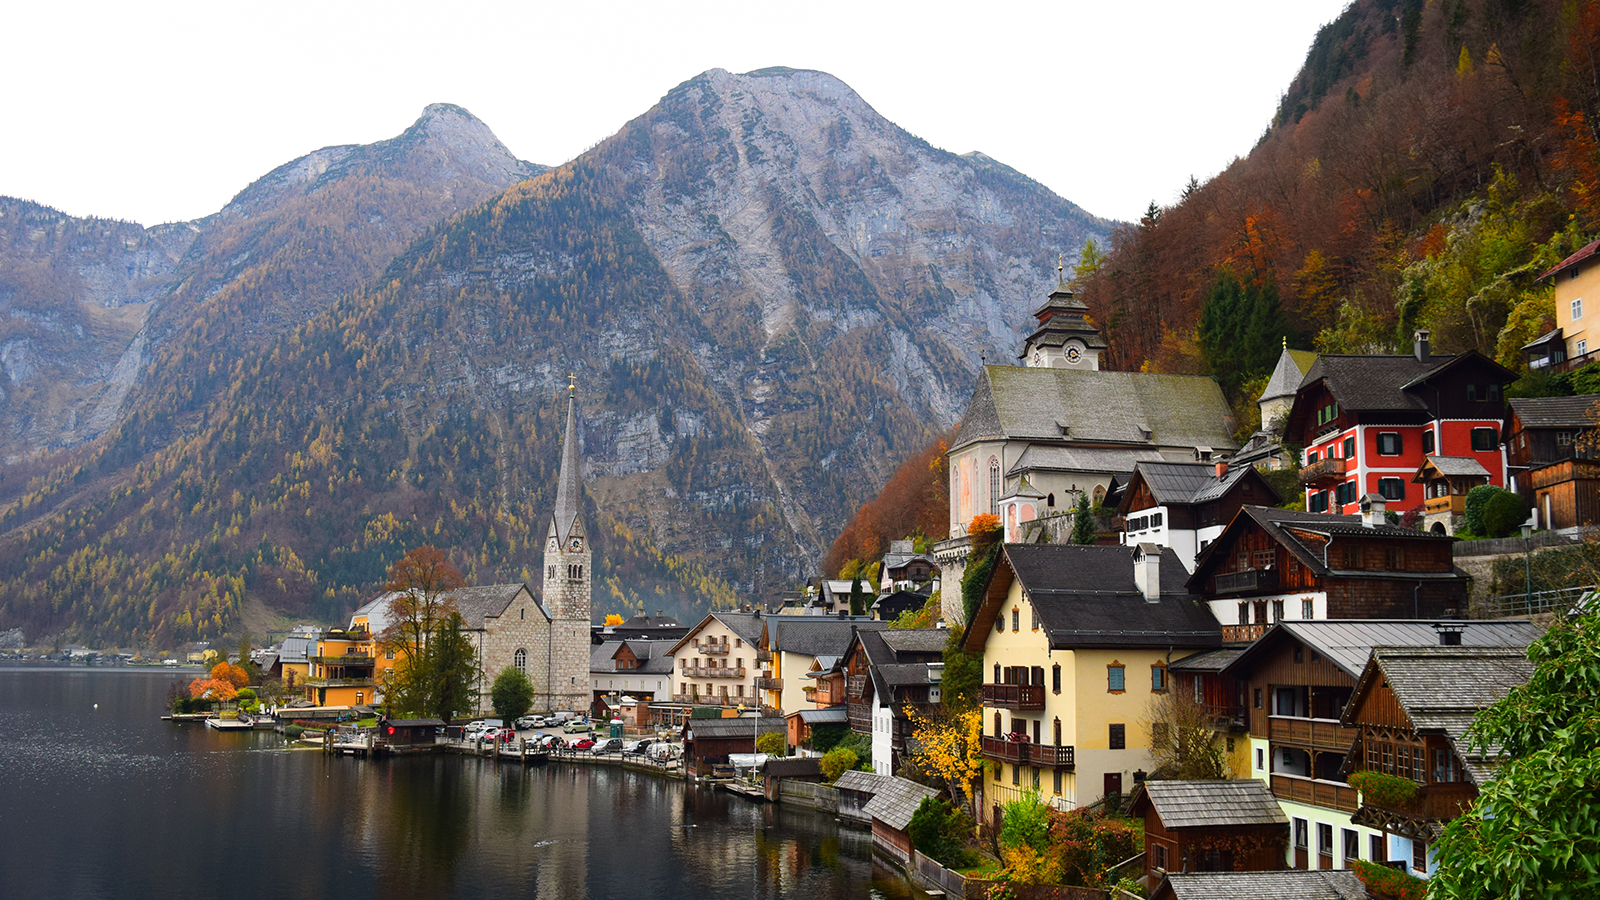 This Austrian city was just named the world's most liveable city